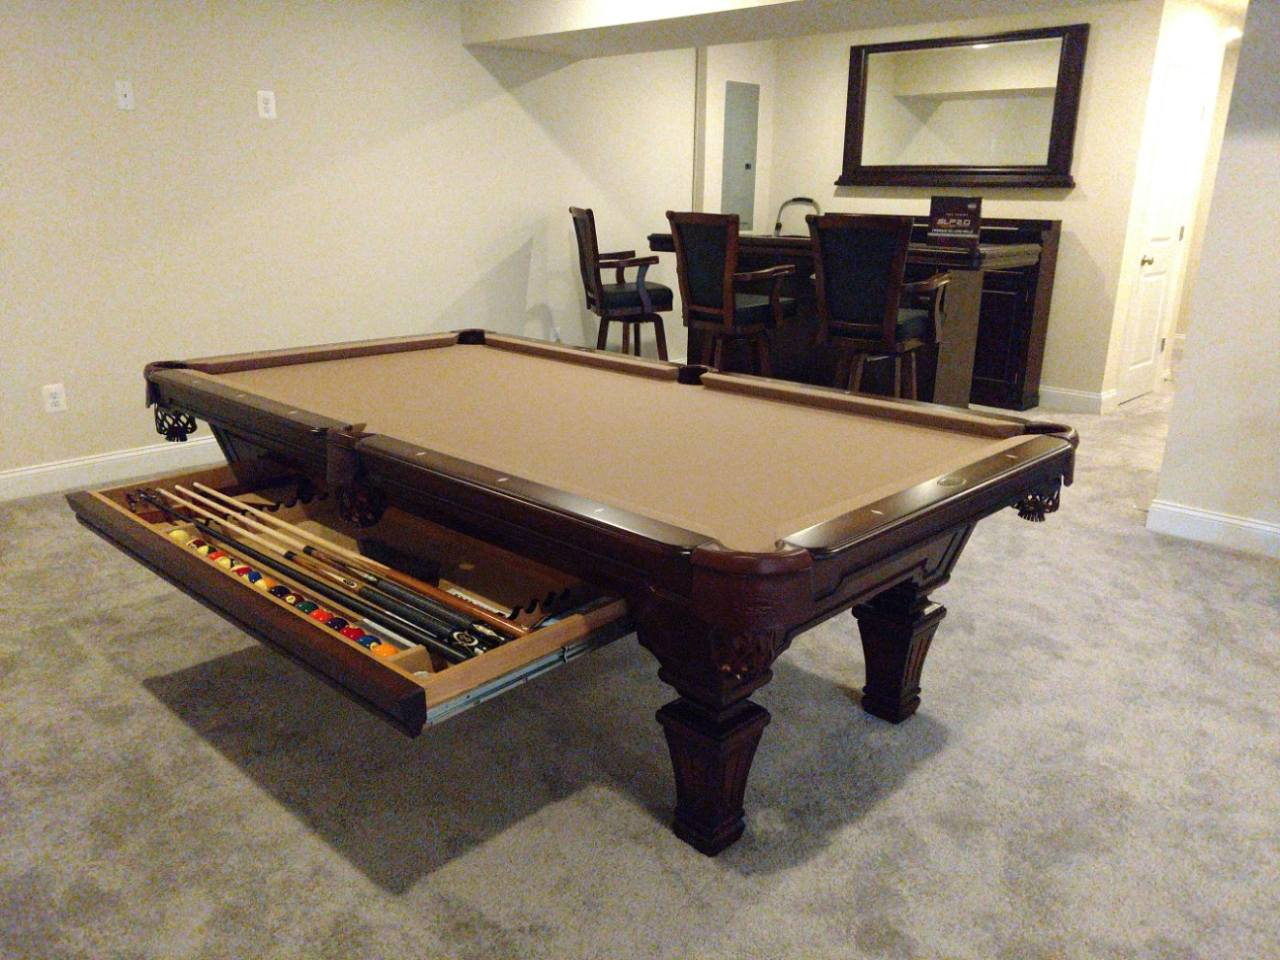 Olhausen Hampton Pool Table installed in Bowie Maryland